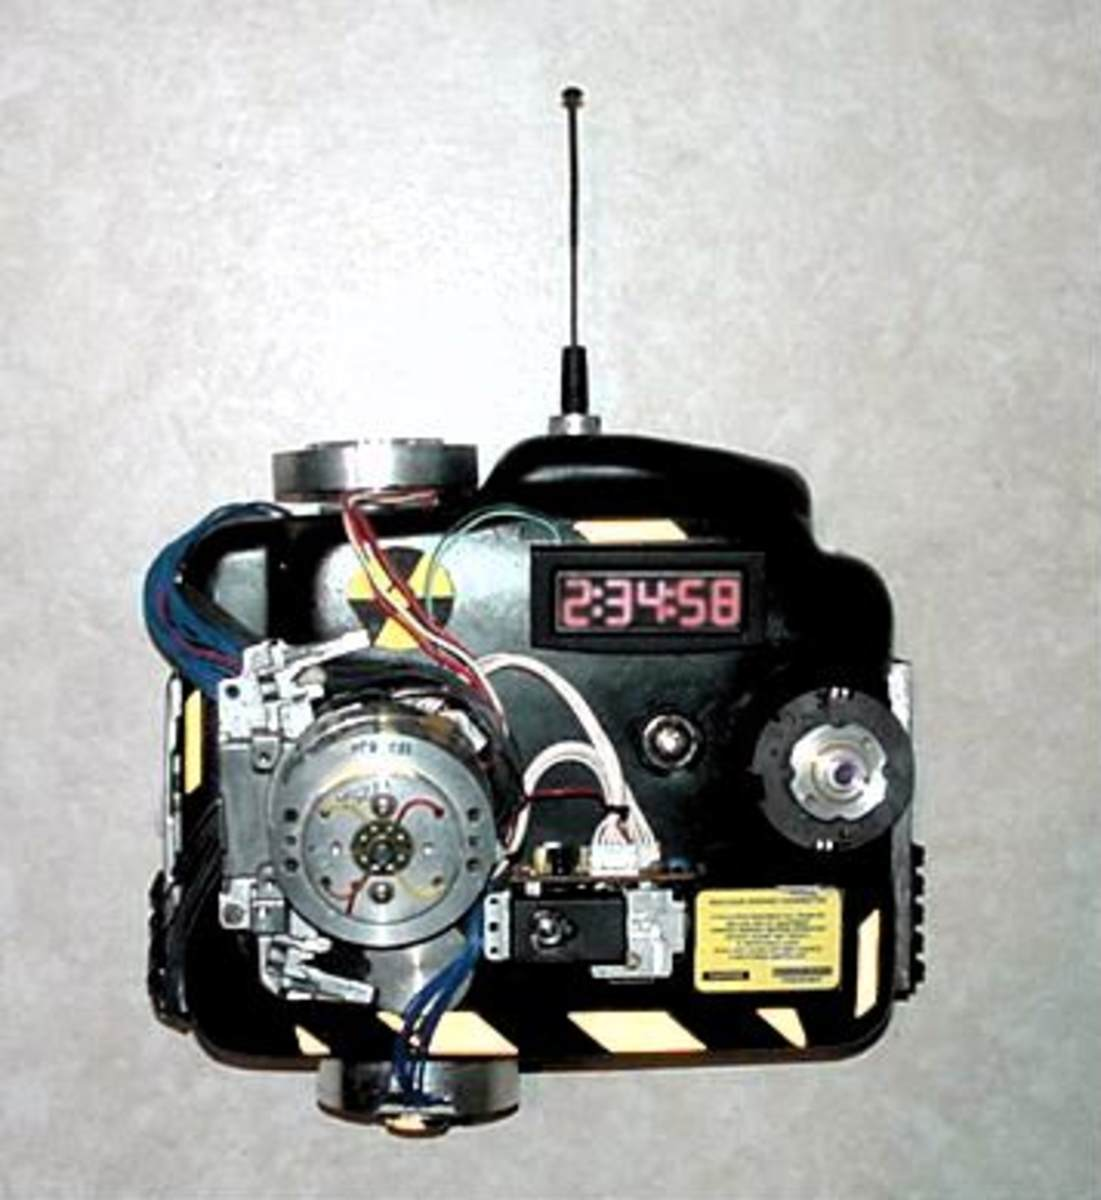 The detonation system to put the suitcase nuke on a timer.